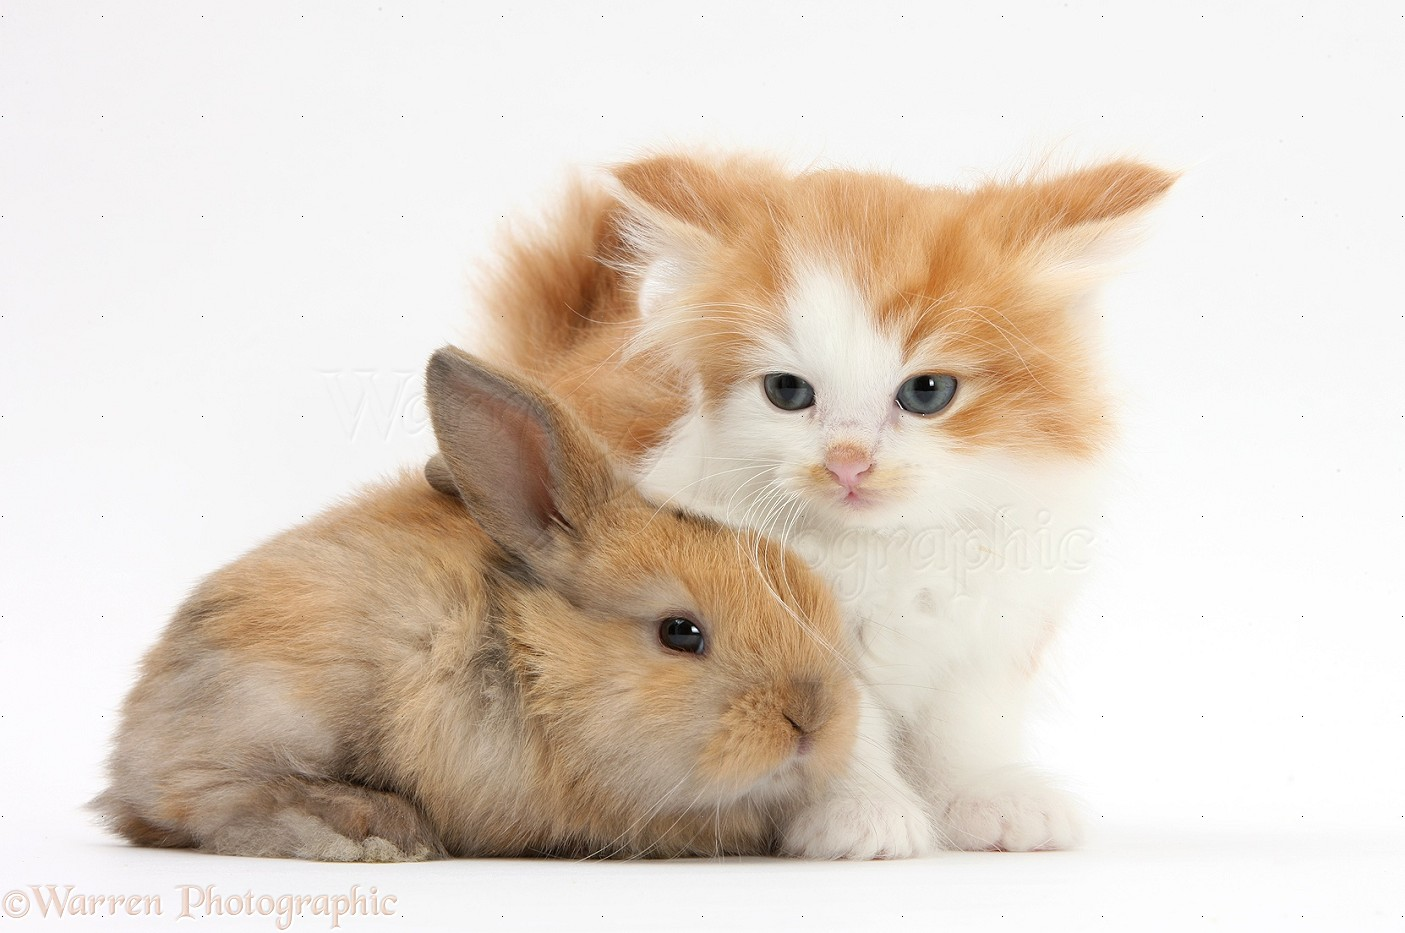 Pets Ginger and white kitten baby rabbit photo WP